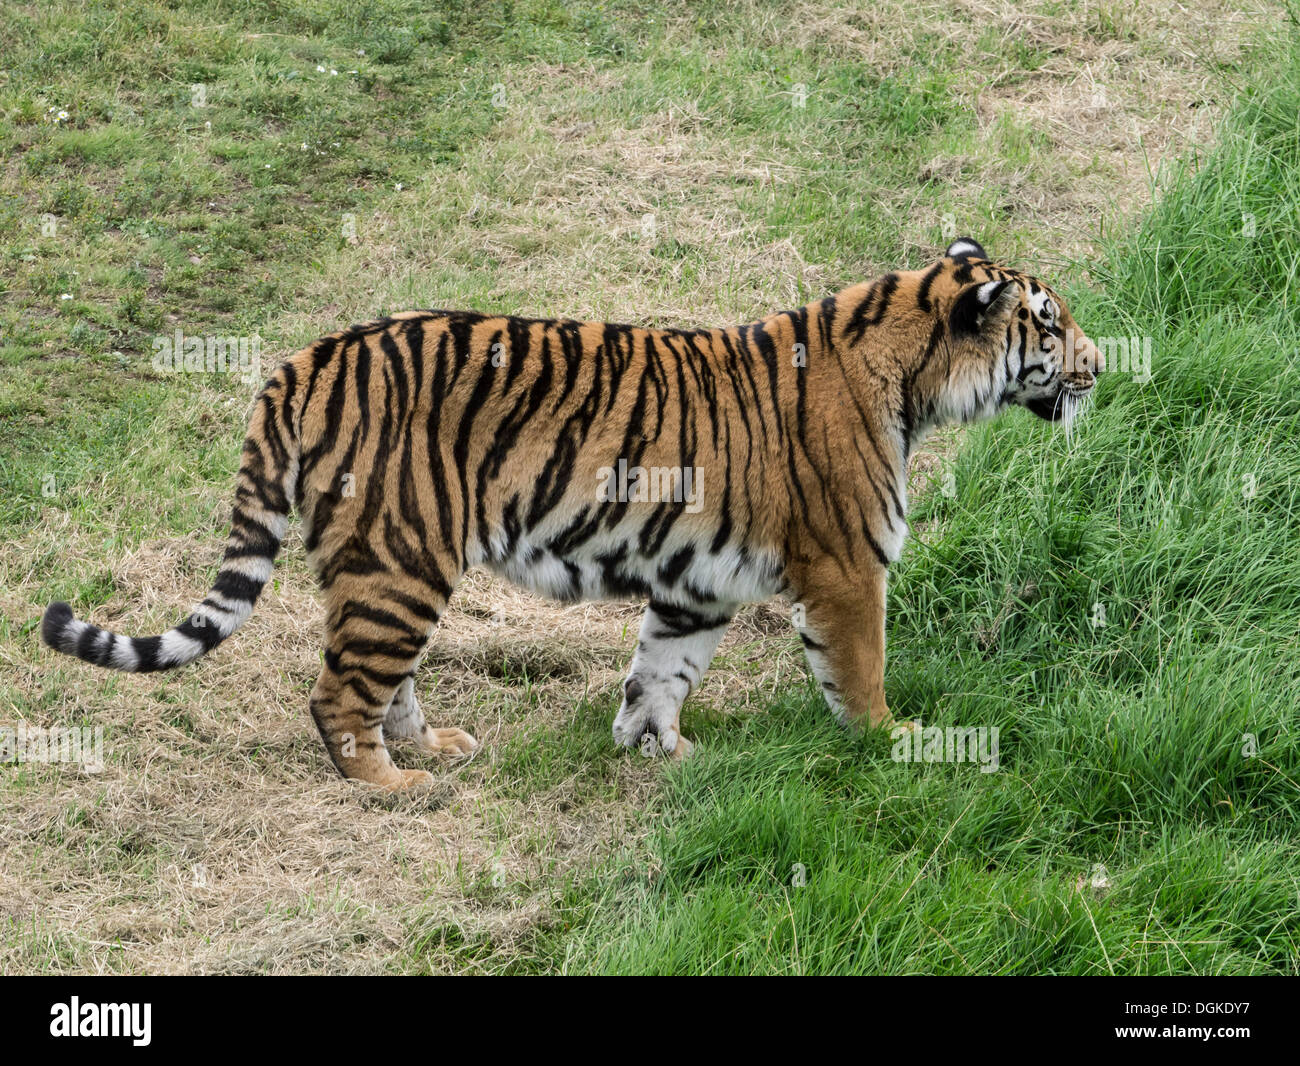 A fearsome tiger walk slowly by ignoring us all - Stock Image